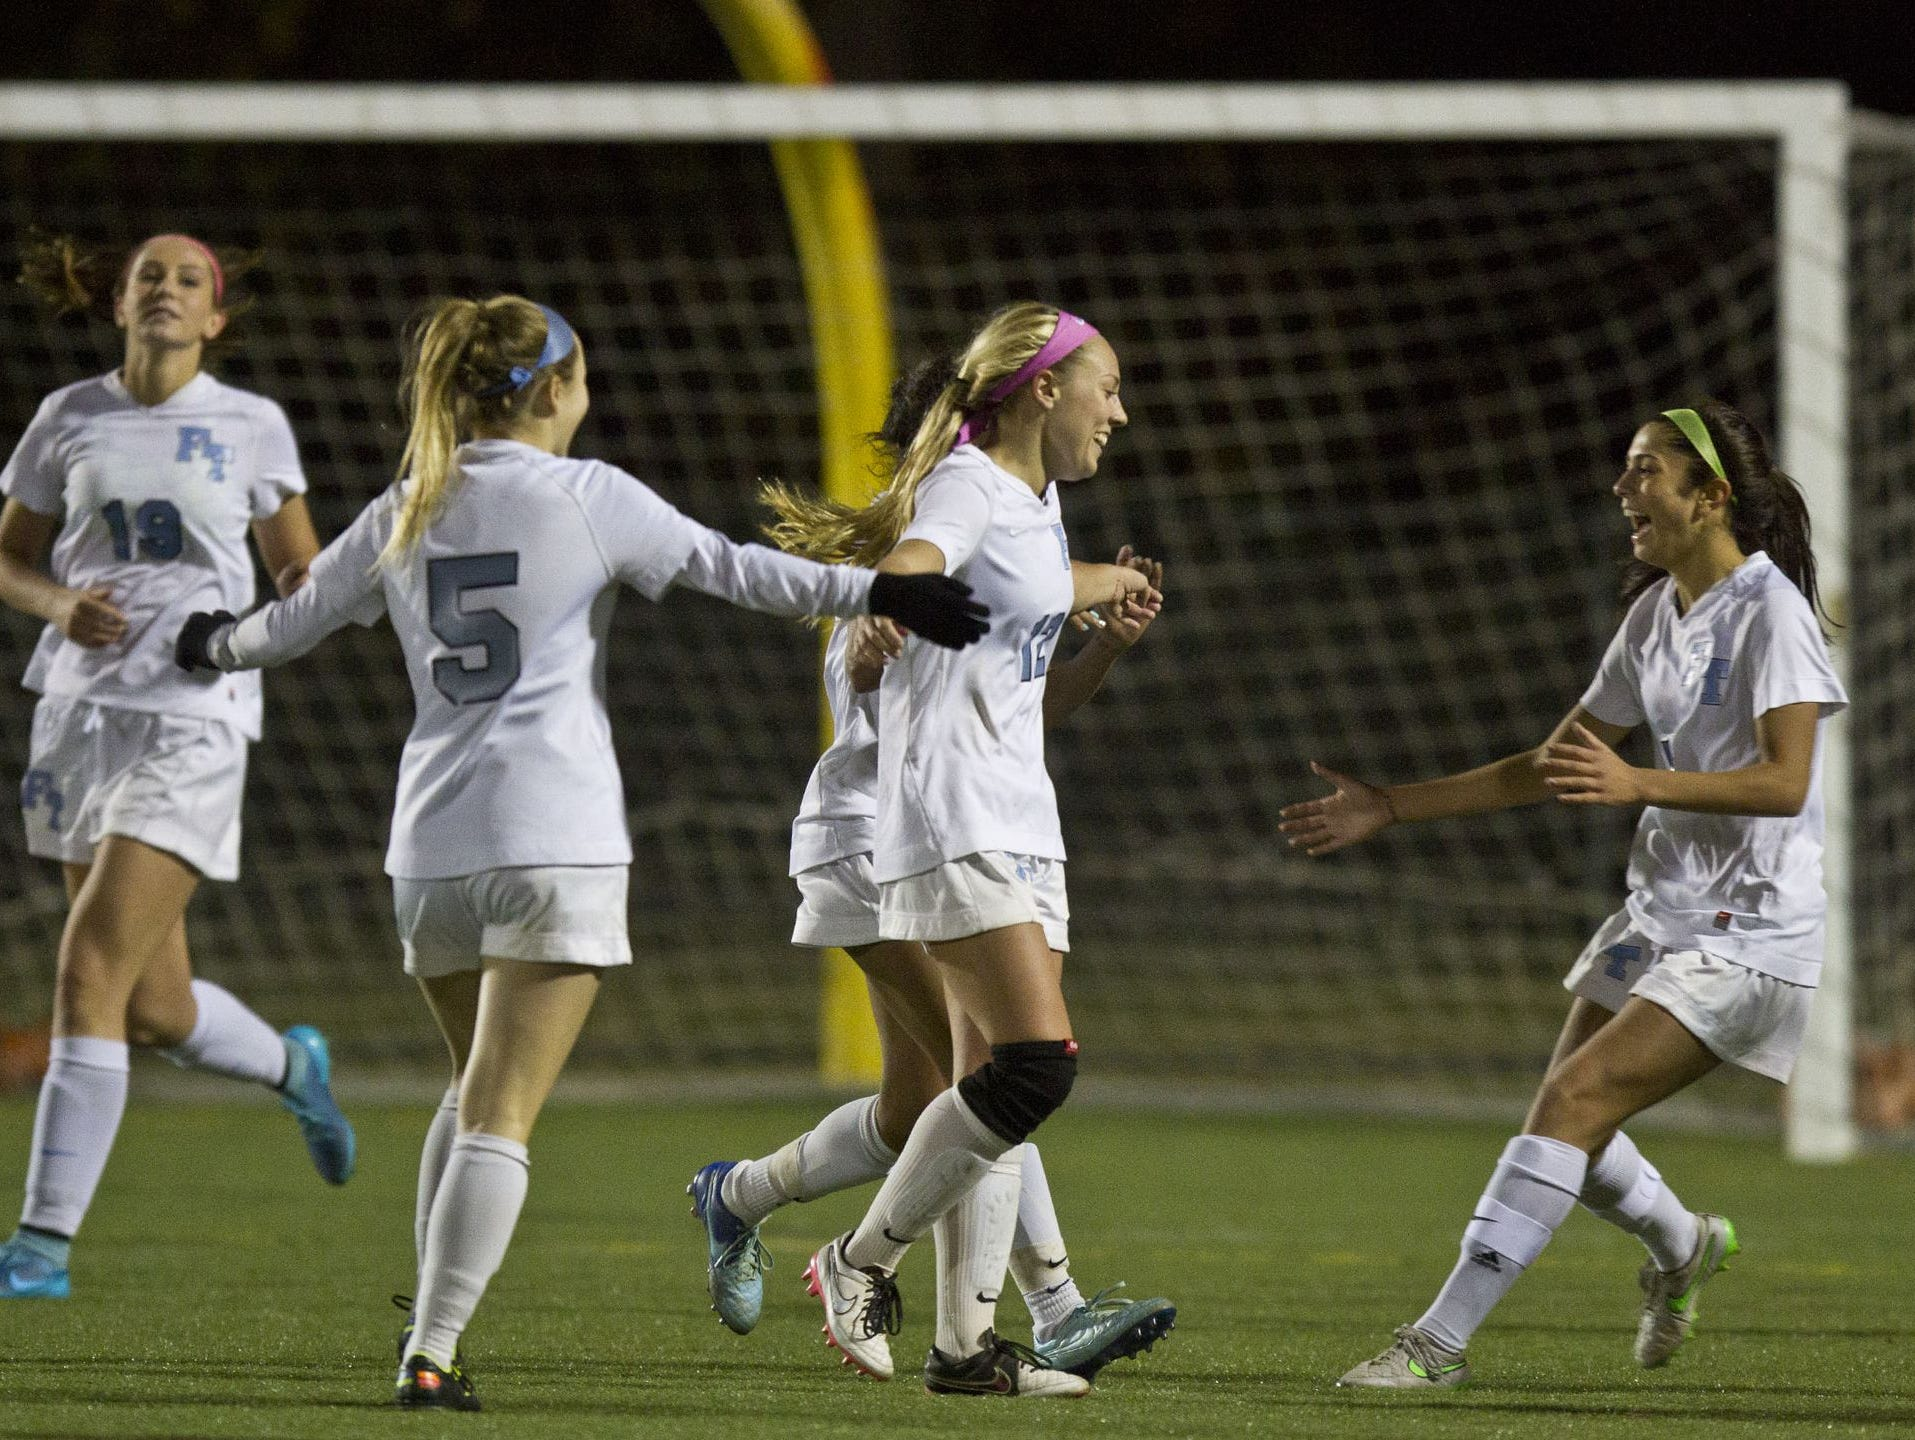 The Freehold Township girls soccer